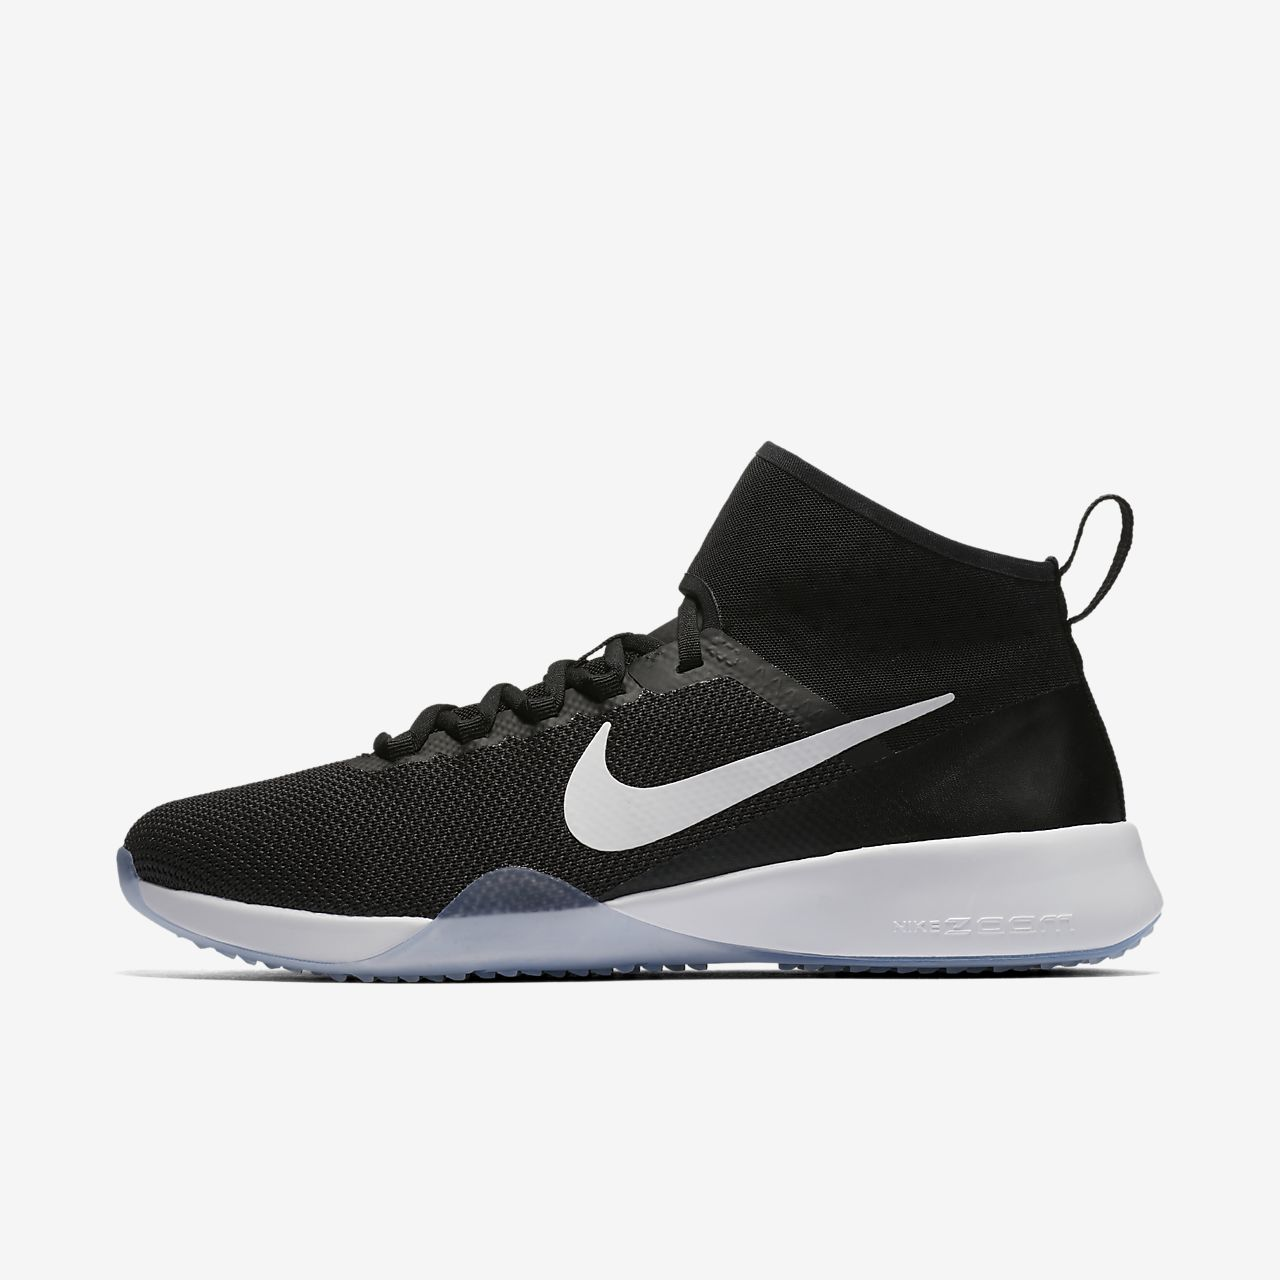 Fitnessstudio & Training Schuhe Nike Air Zoom Strong (Weiß